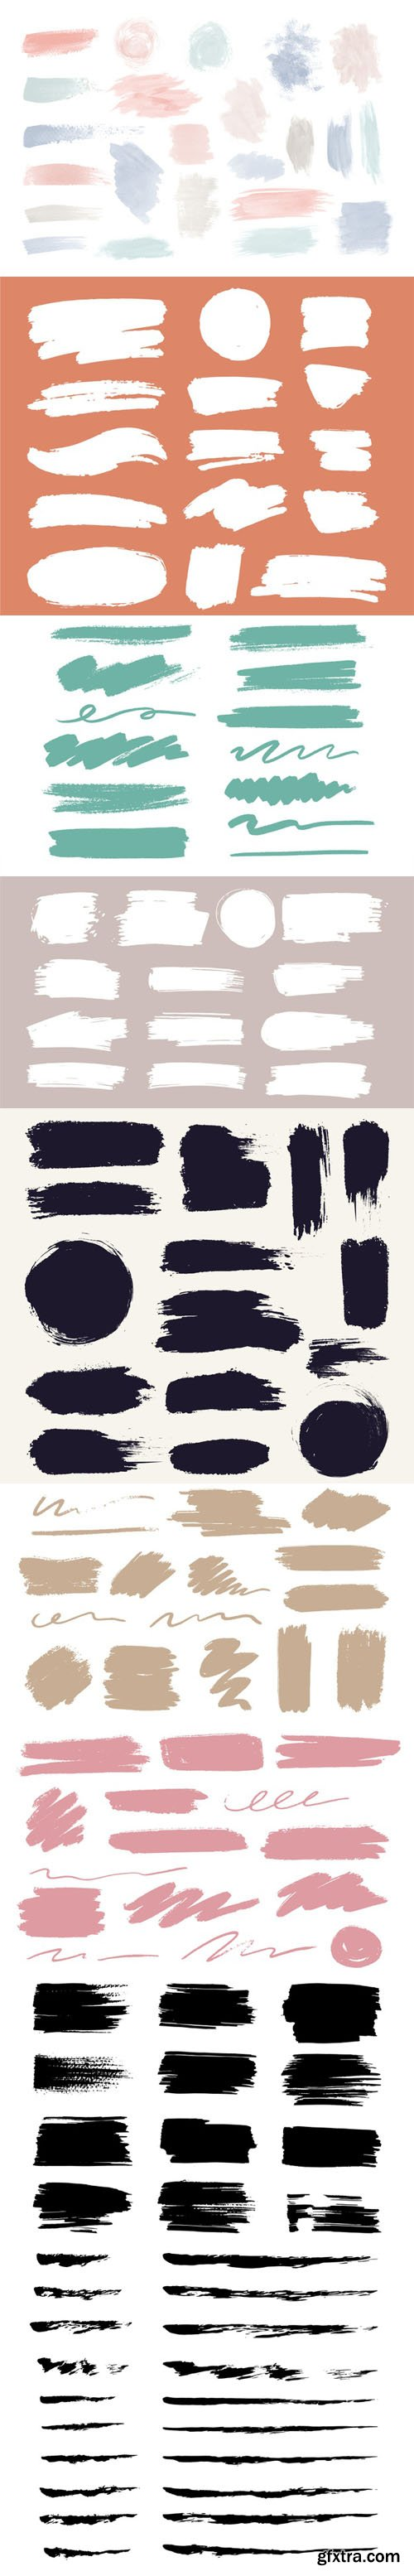 146 Colorful Ink Brush Stroke Vector Templates